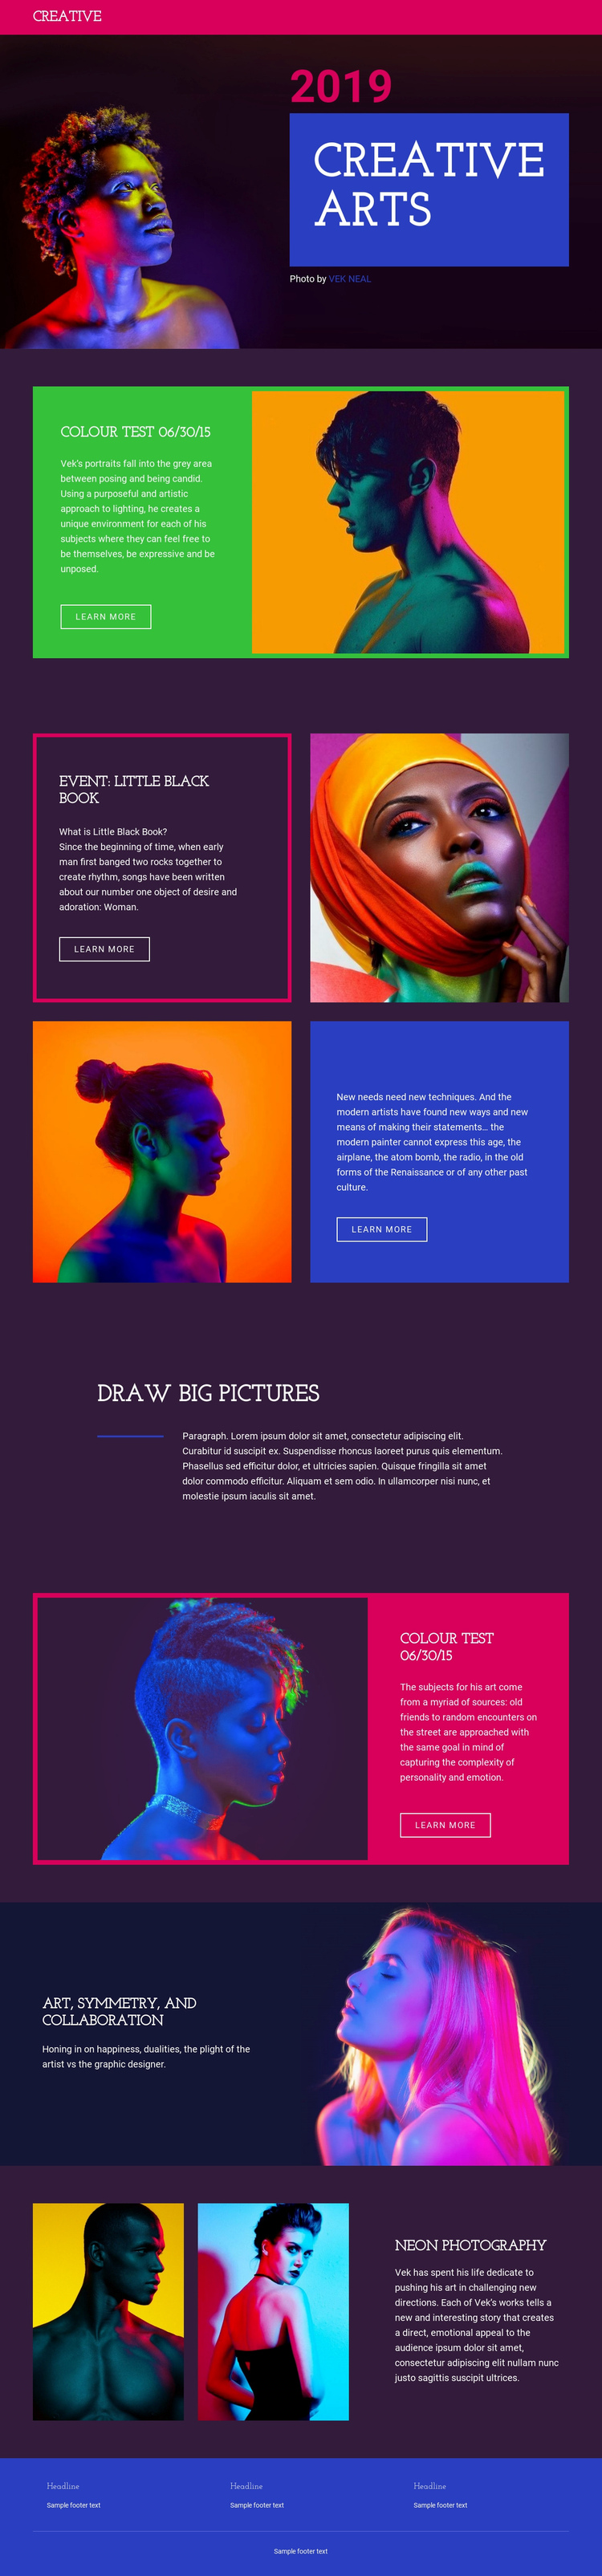 Limited-edition photography Website Builder Software